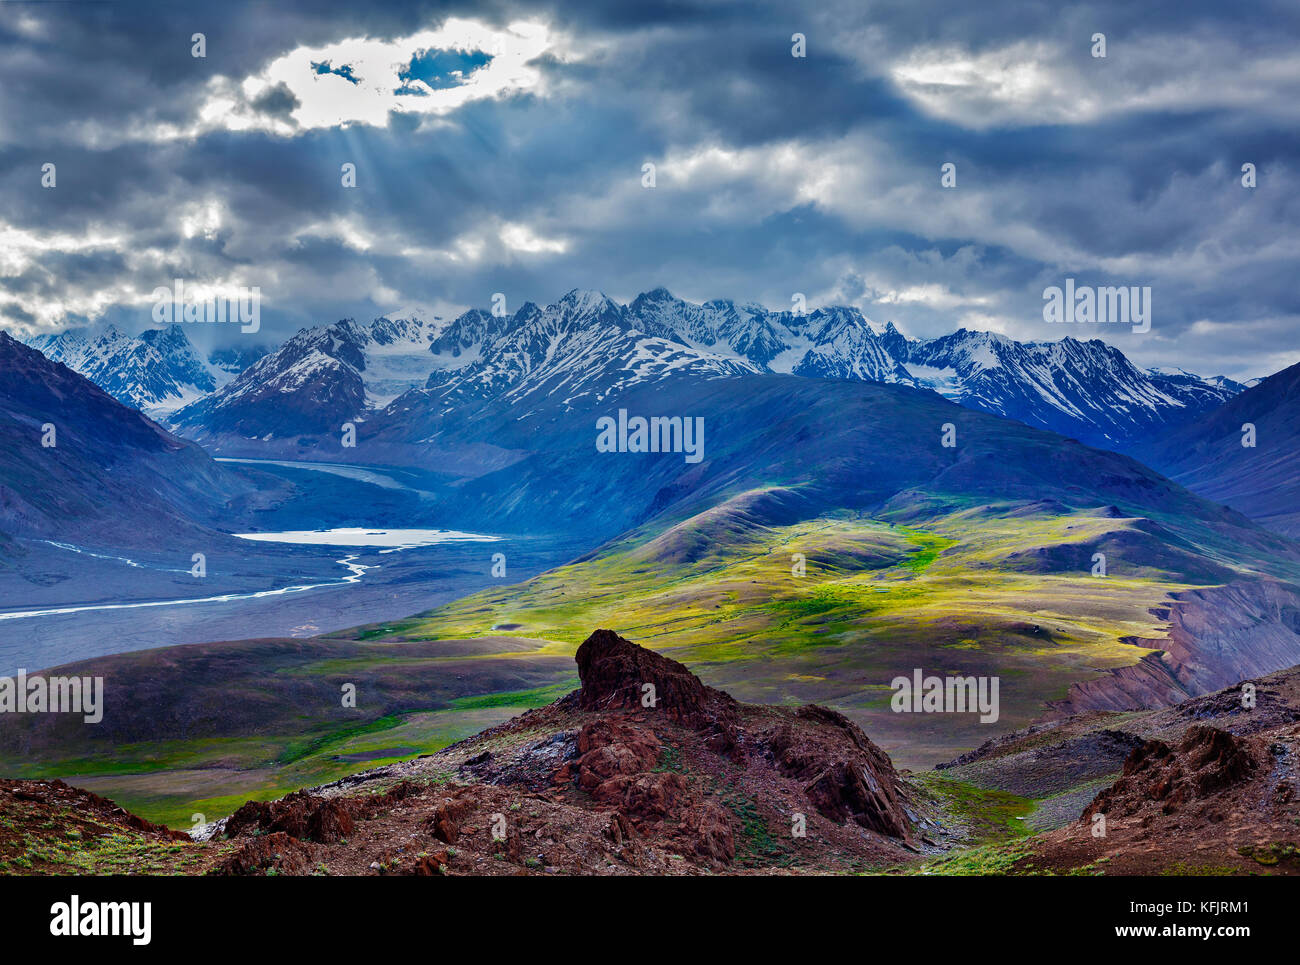 HImalayan landscape in Himalayas with river - Stock Image